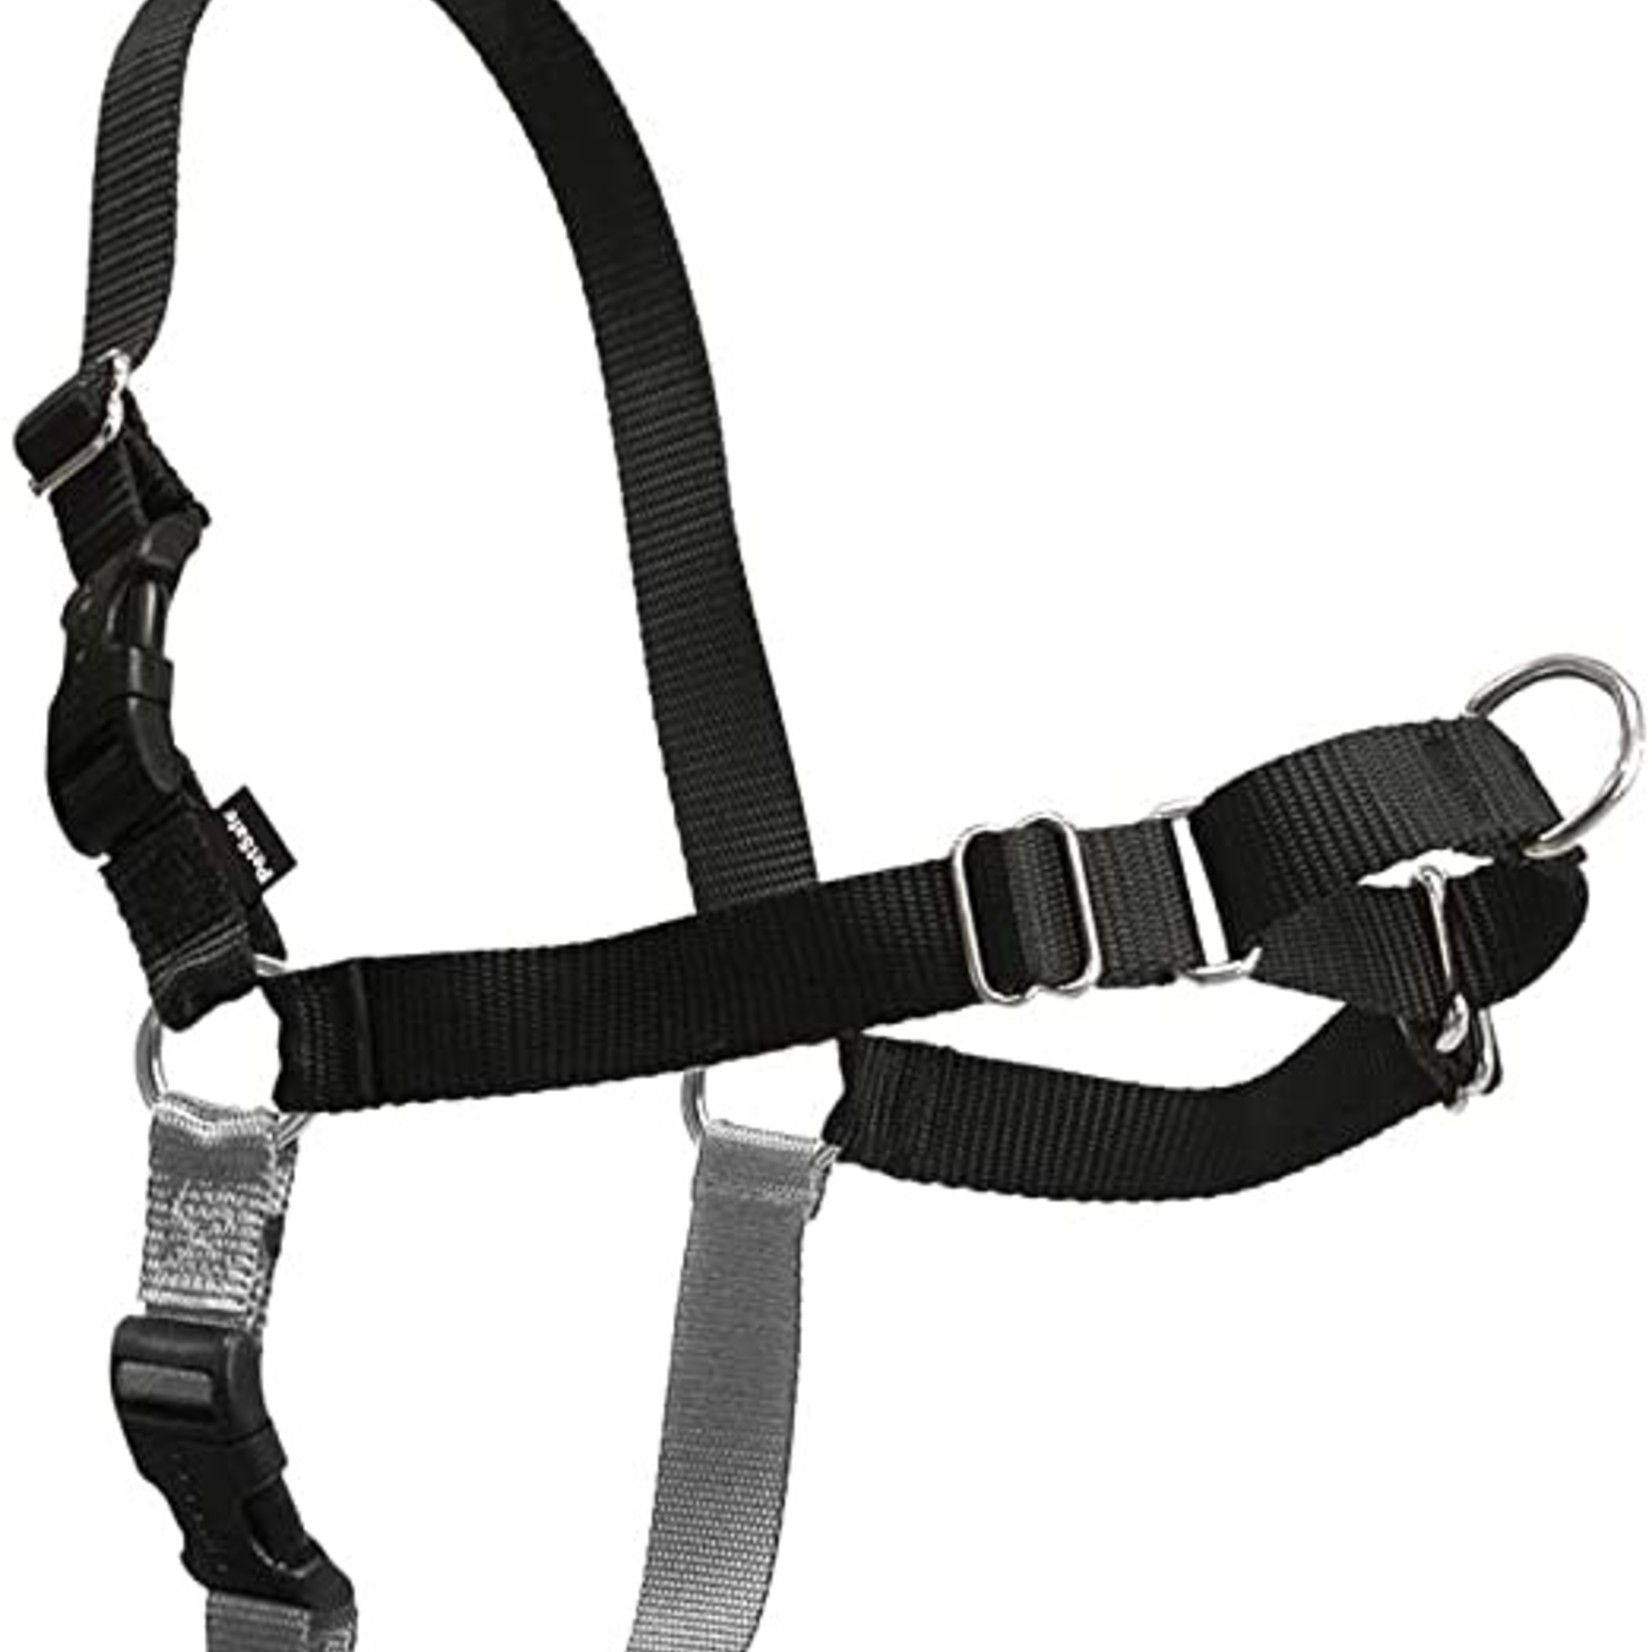 Pet Safe / Radio Systems Corp. Easy Walk Harness Black Extra Large